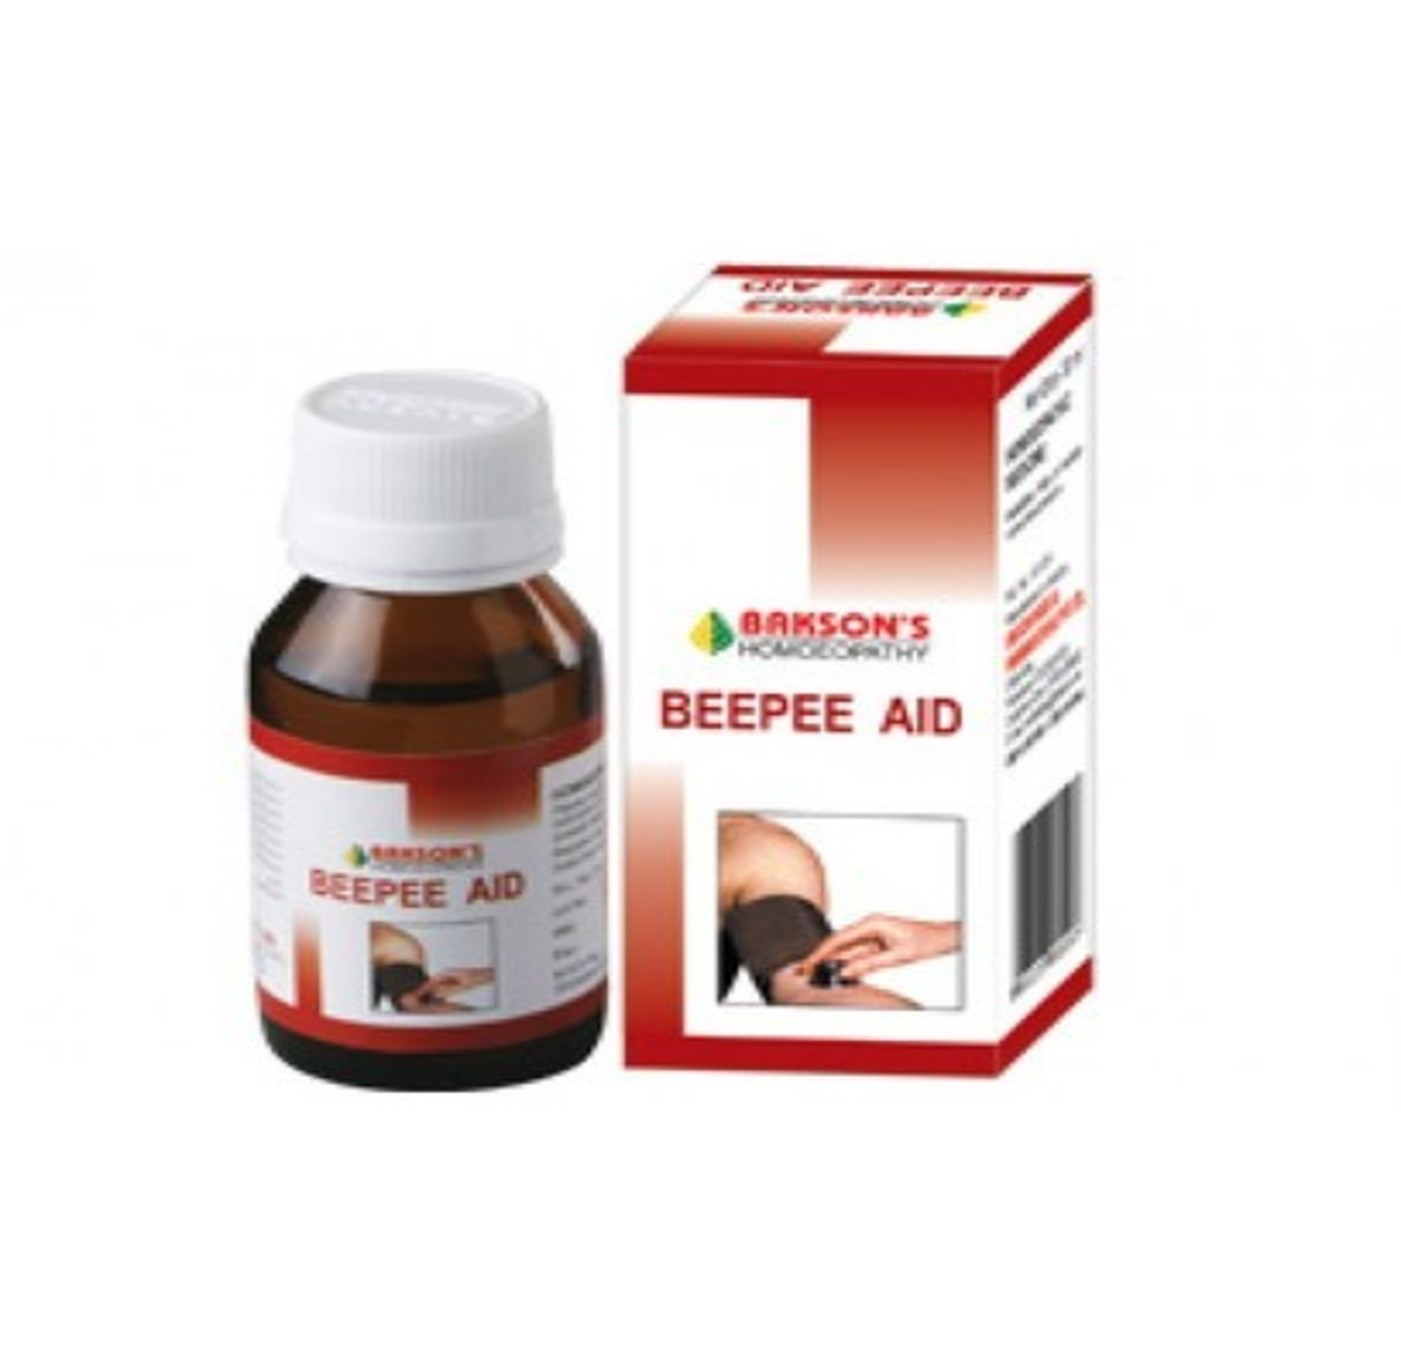 Bakson Beepee Aid Drop Homeopathic Medicine style=